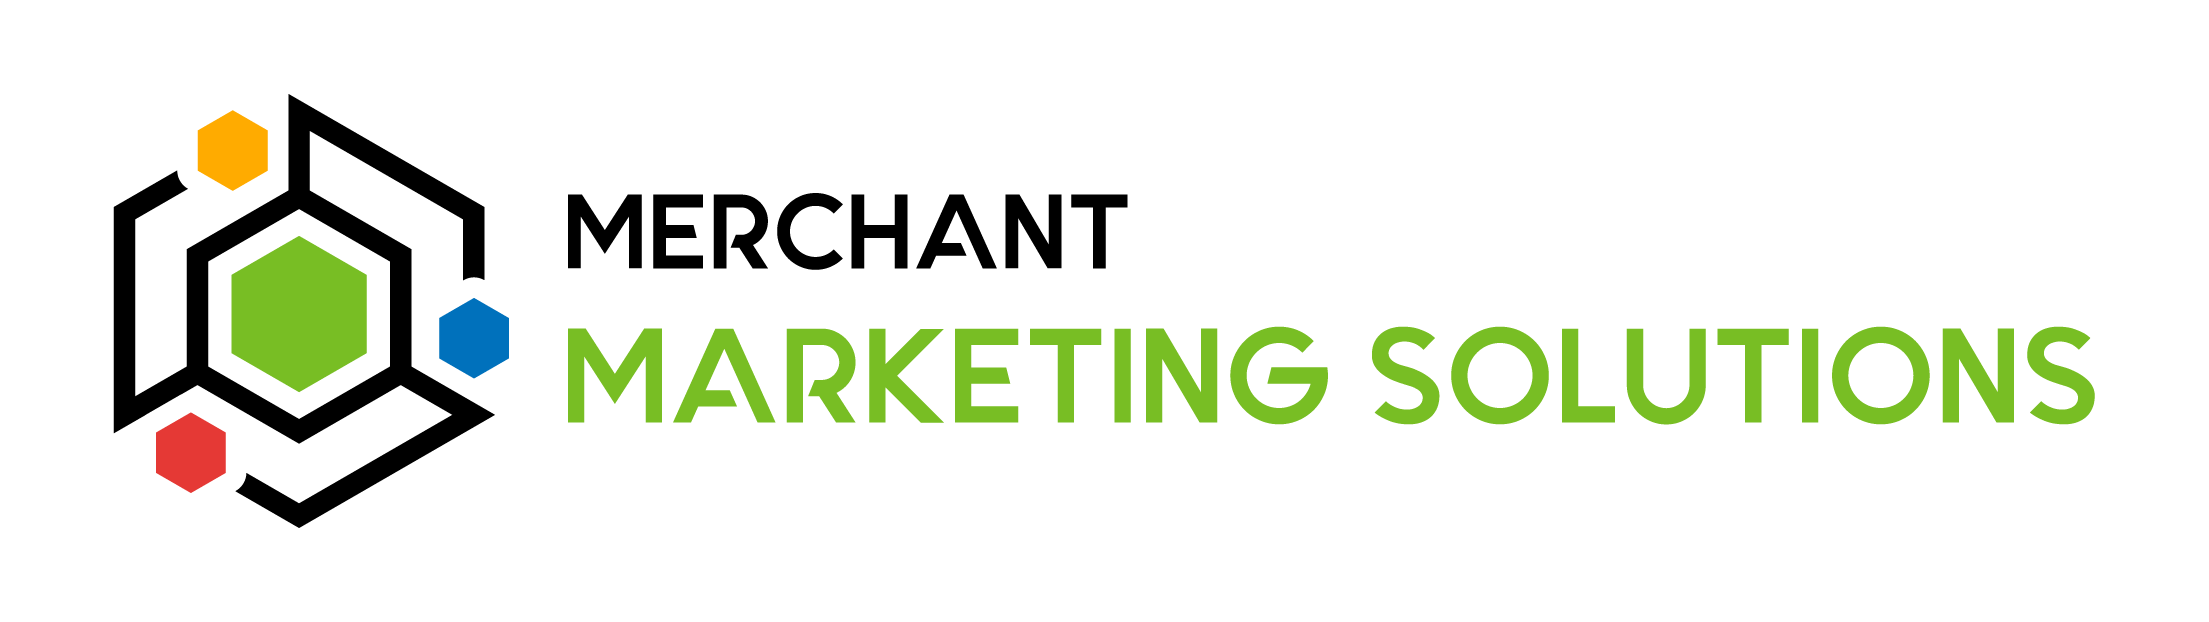 Merchant Marketing Solutions